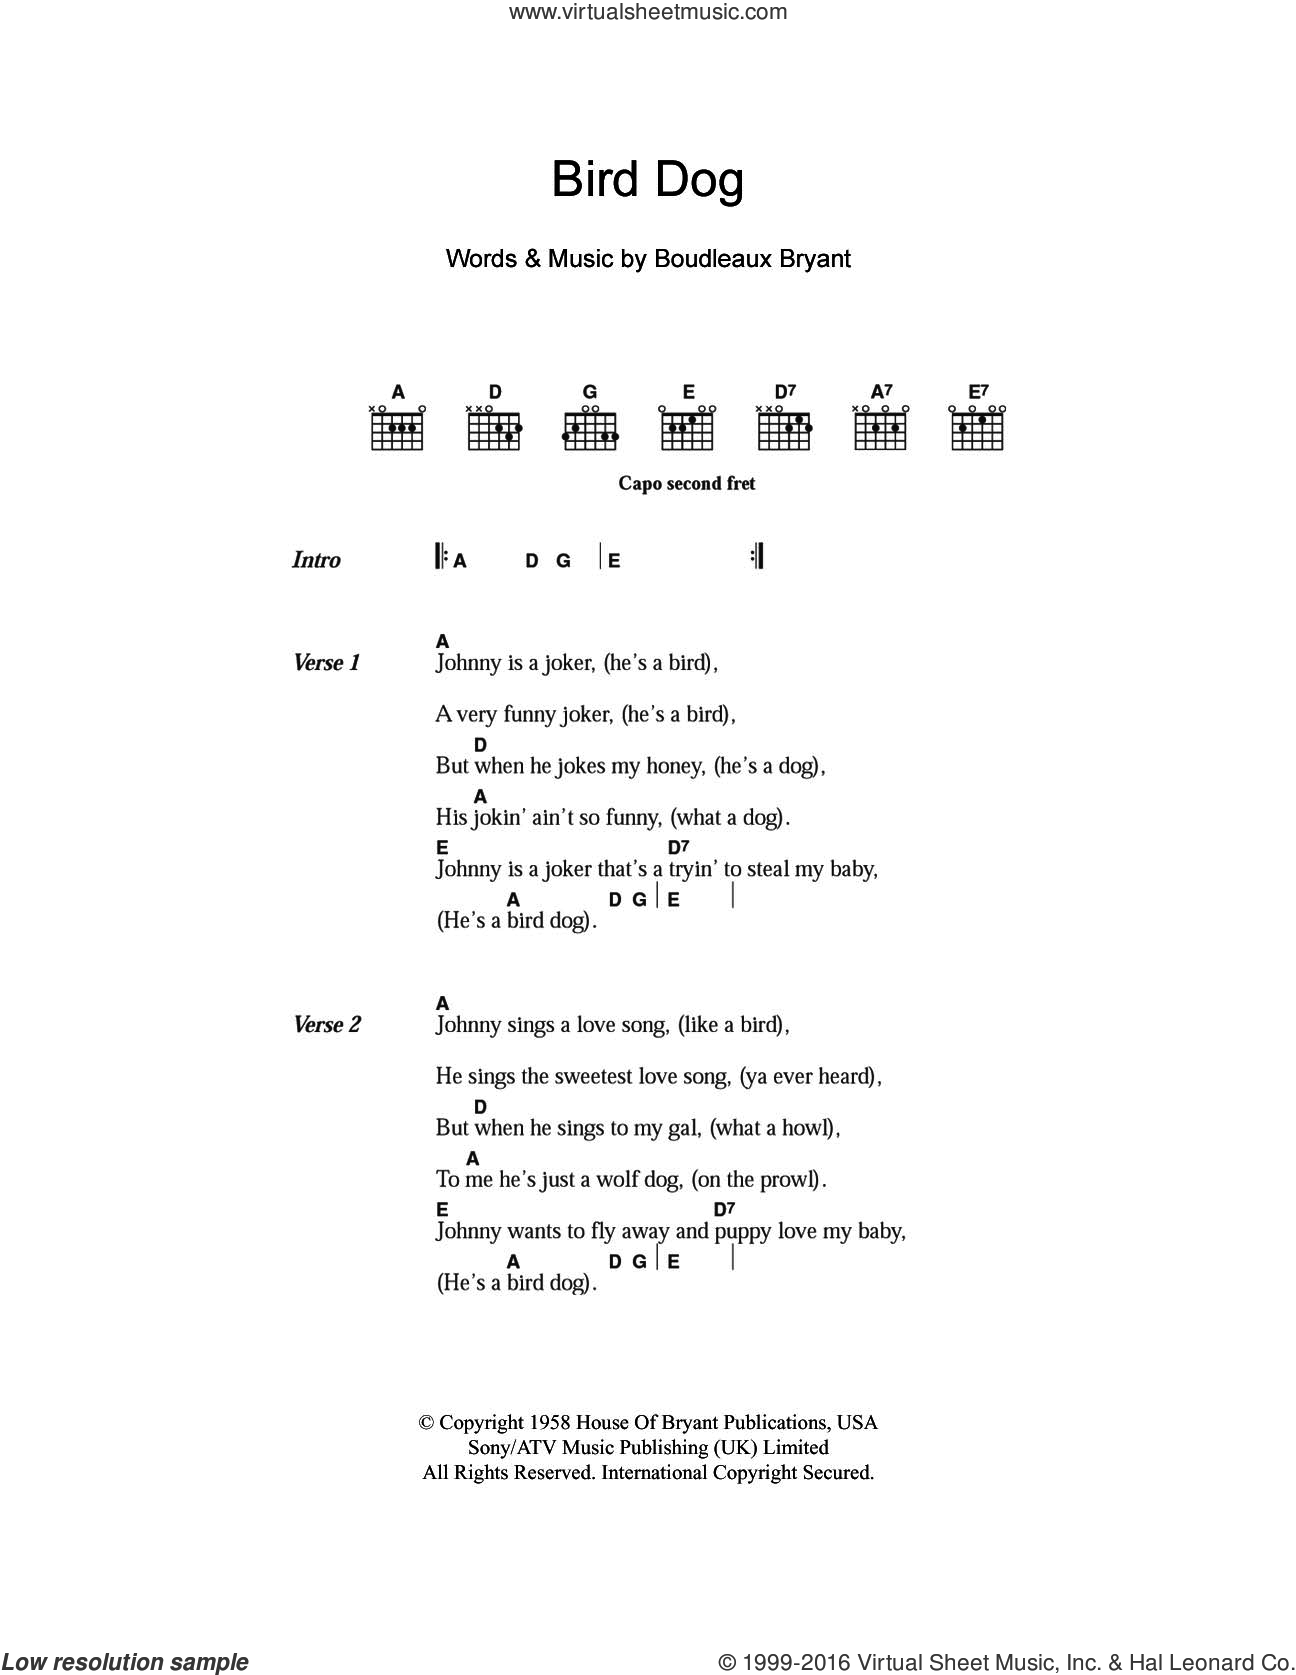 Bird Dog sheet music for guitar (chords) by The Everly Brothers and Boudleaux Bryant, intermediate skill level